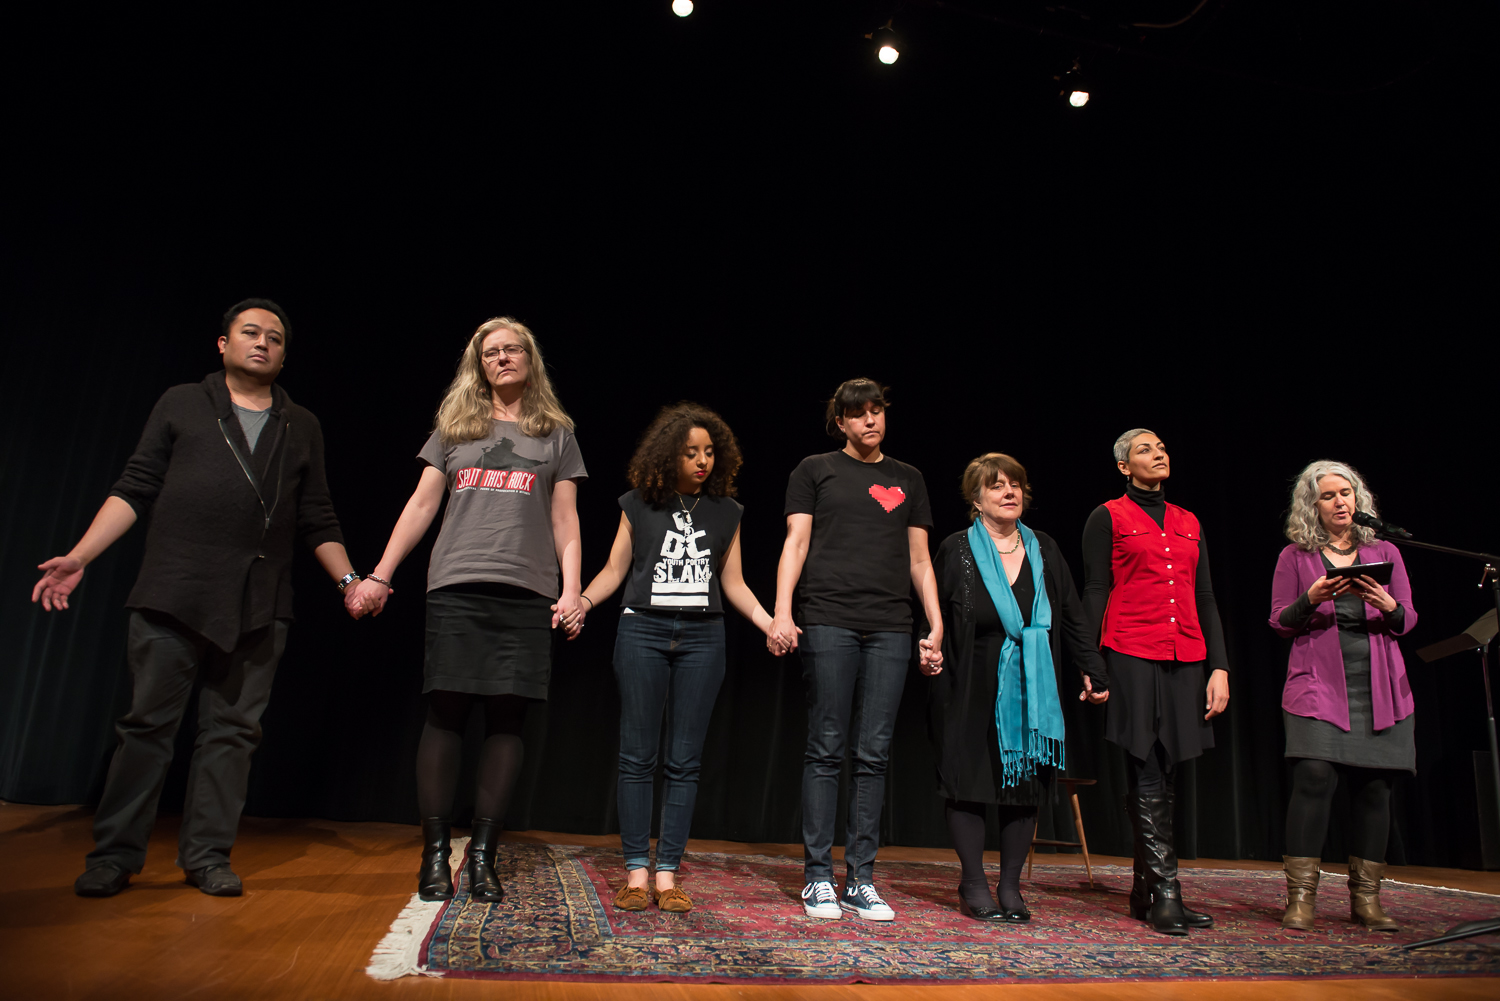 Festival brings poetry, emotion back to social activism